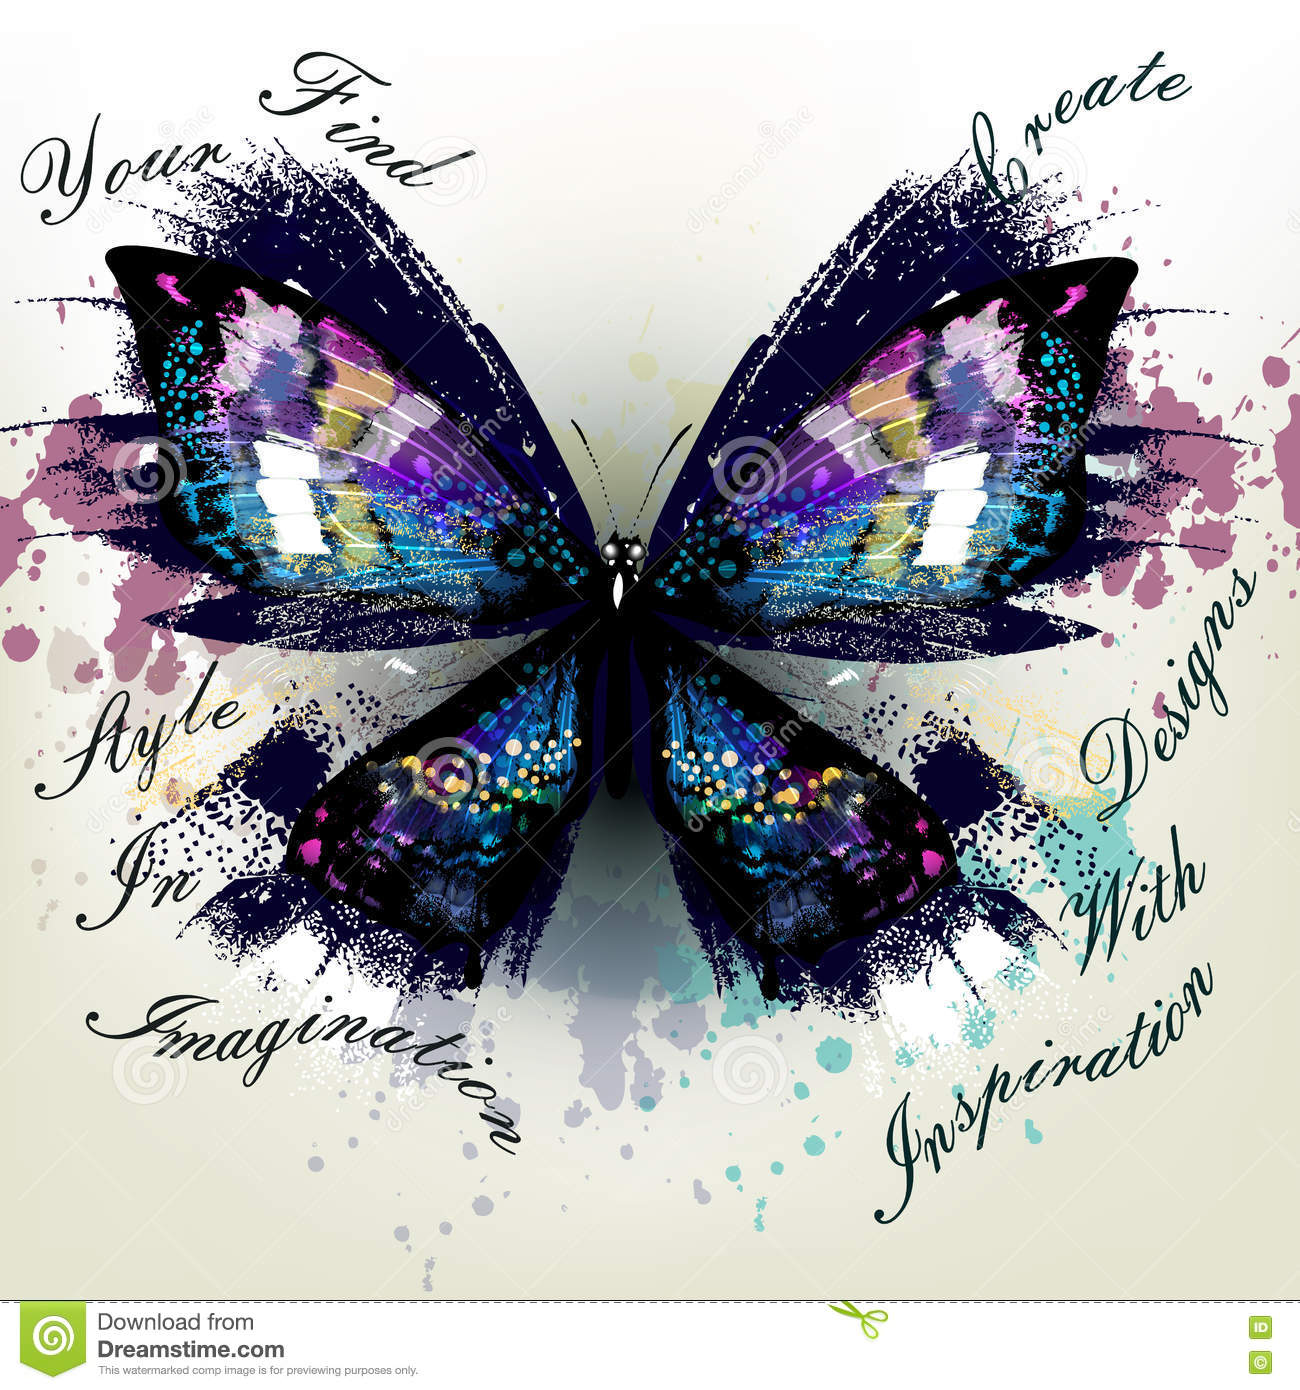 Vector illustration with detailed butterfly symbol of inspiration vector illustration with detailed butterfly symbol of inspiration biocorpaavc Images